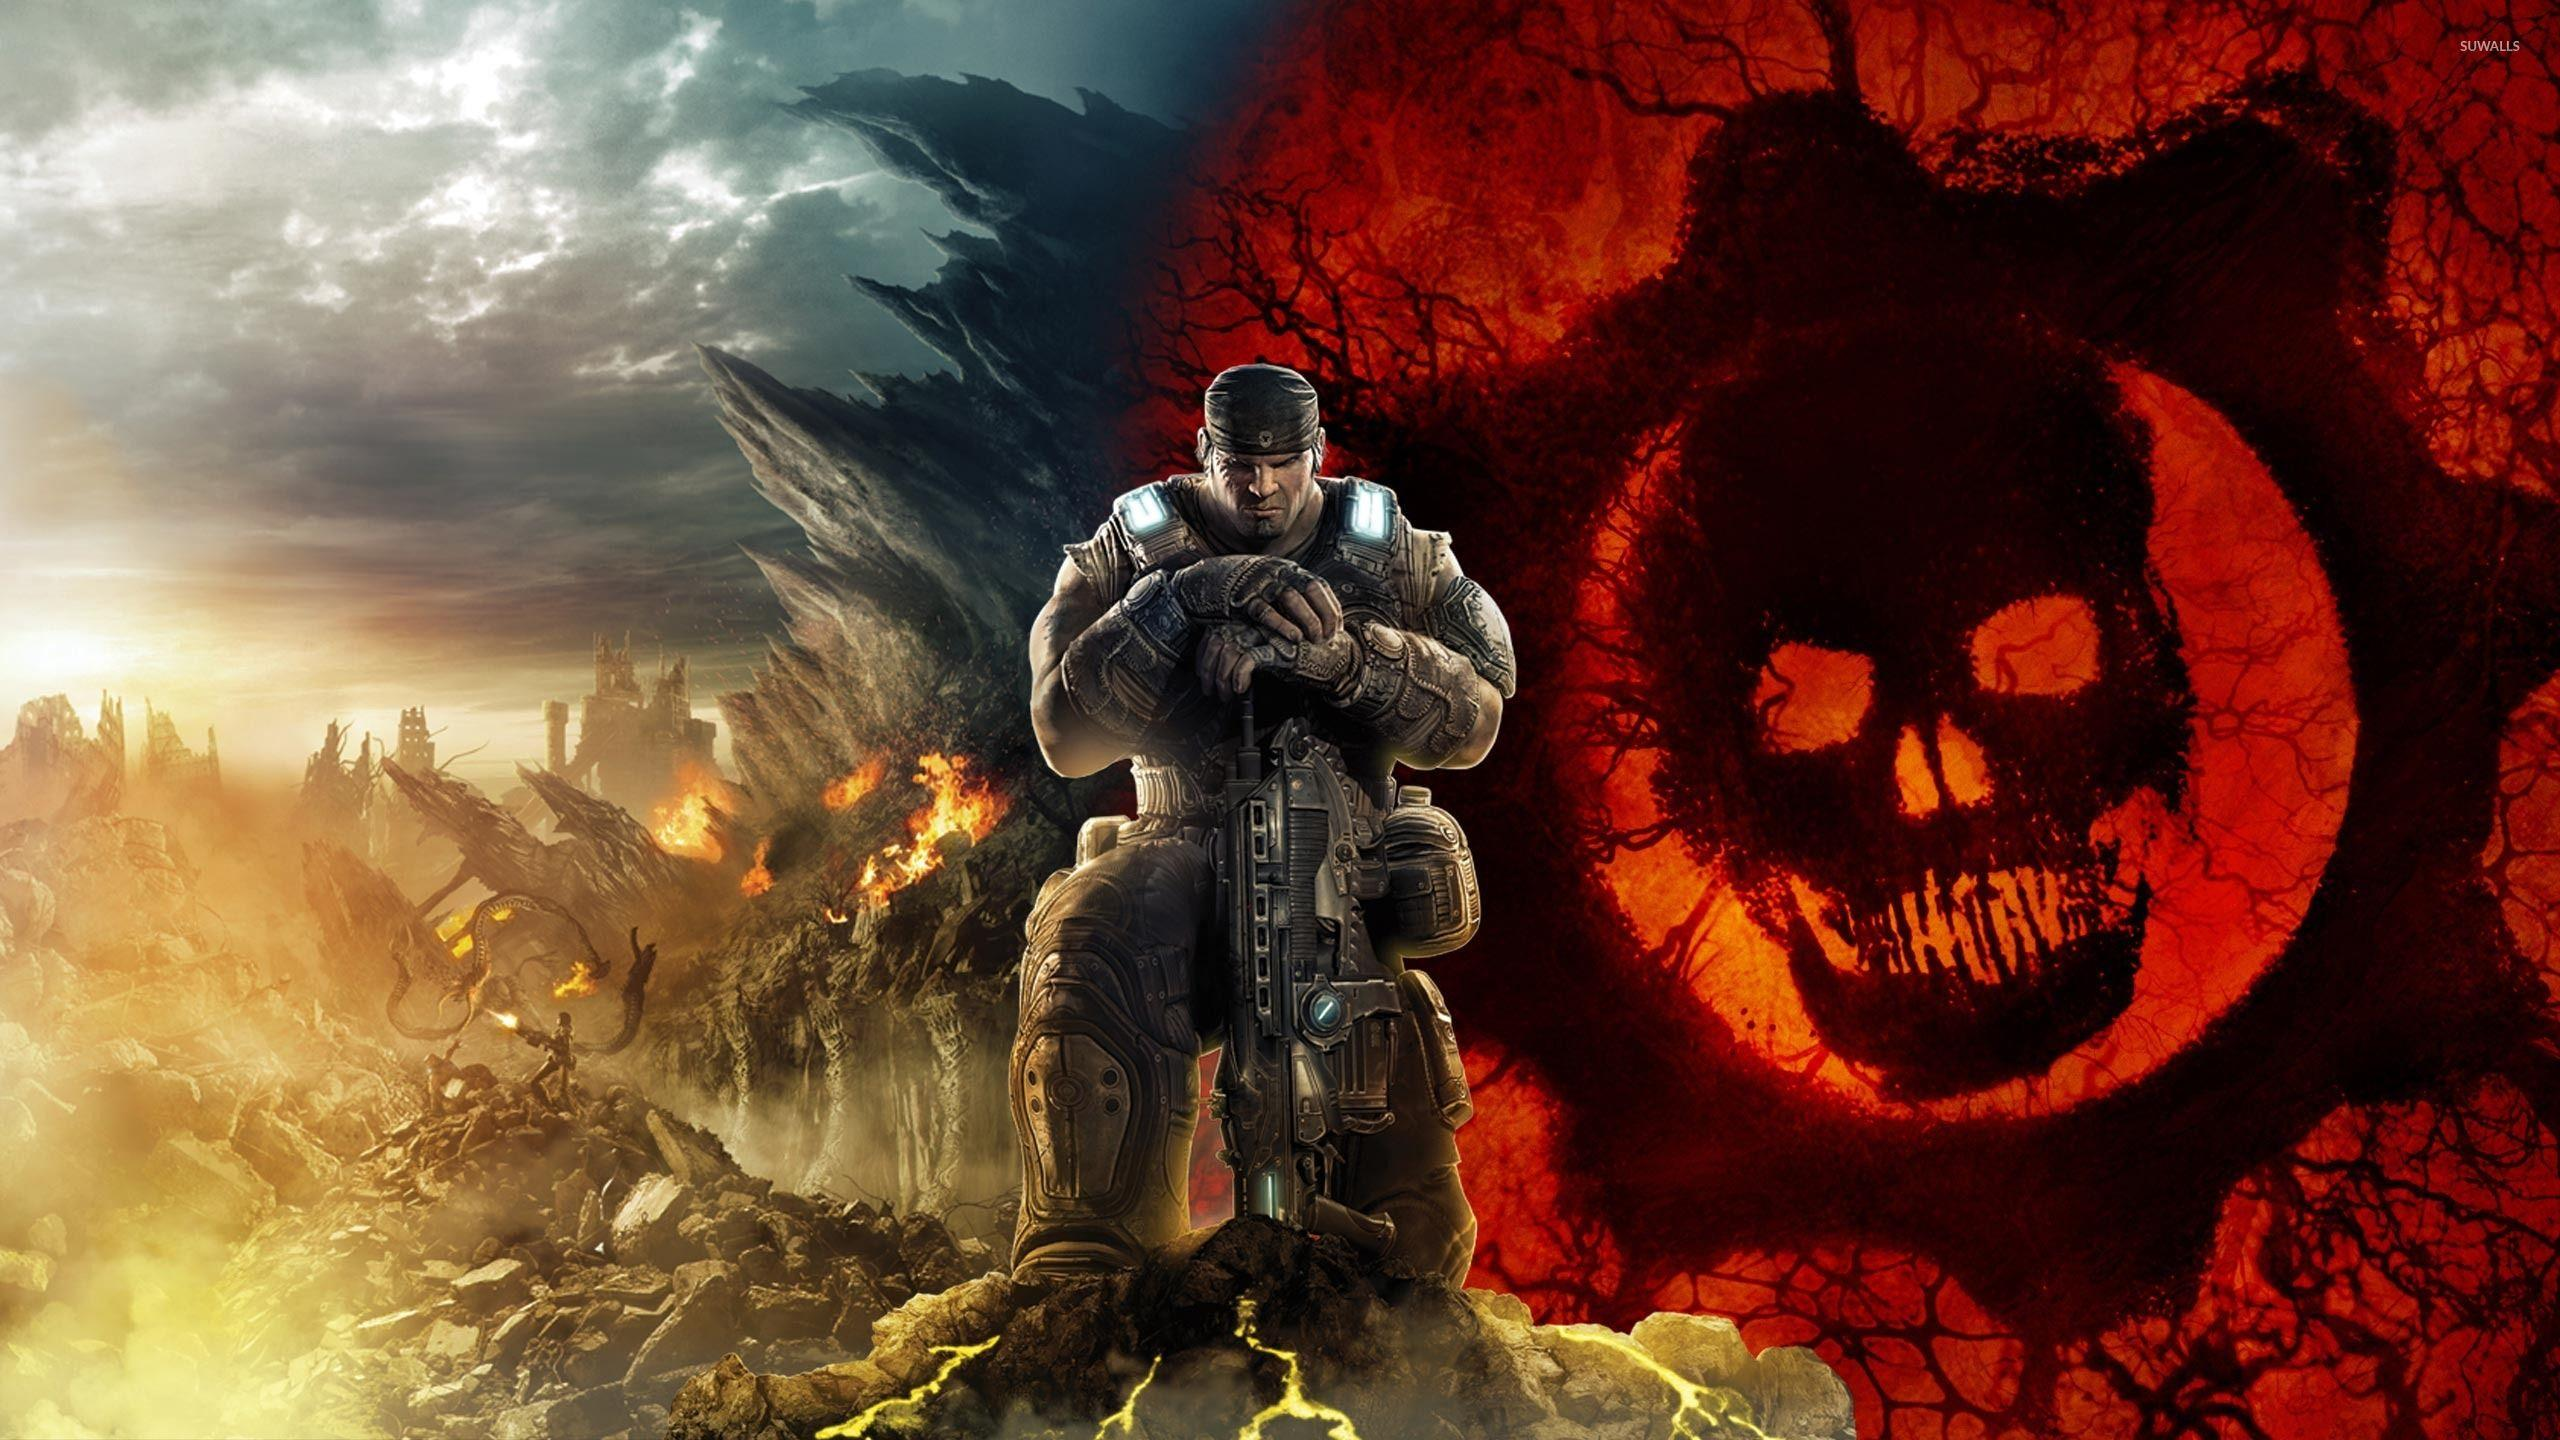 Gears Of War 3 Wallpapers: Gears Of War 5 Wallpapers